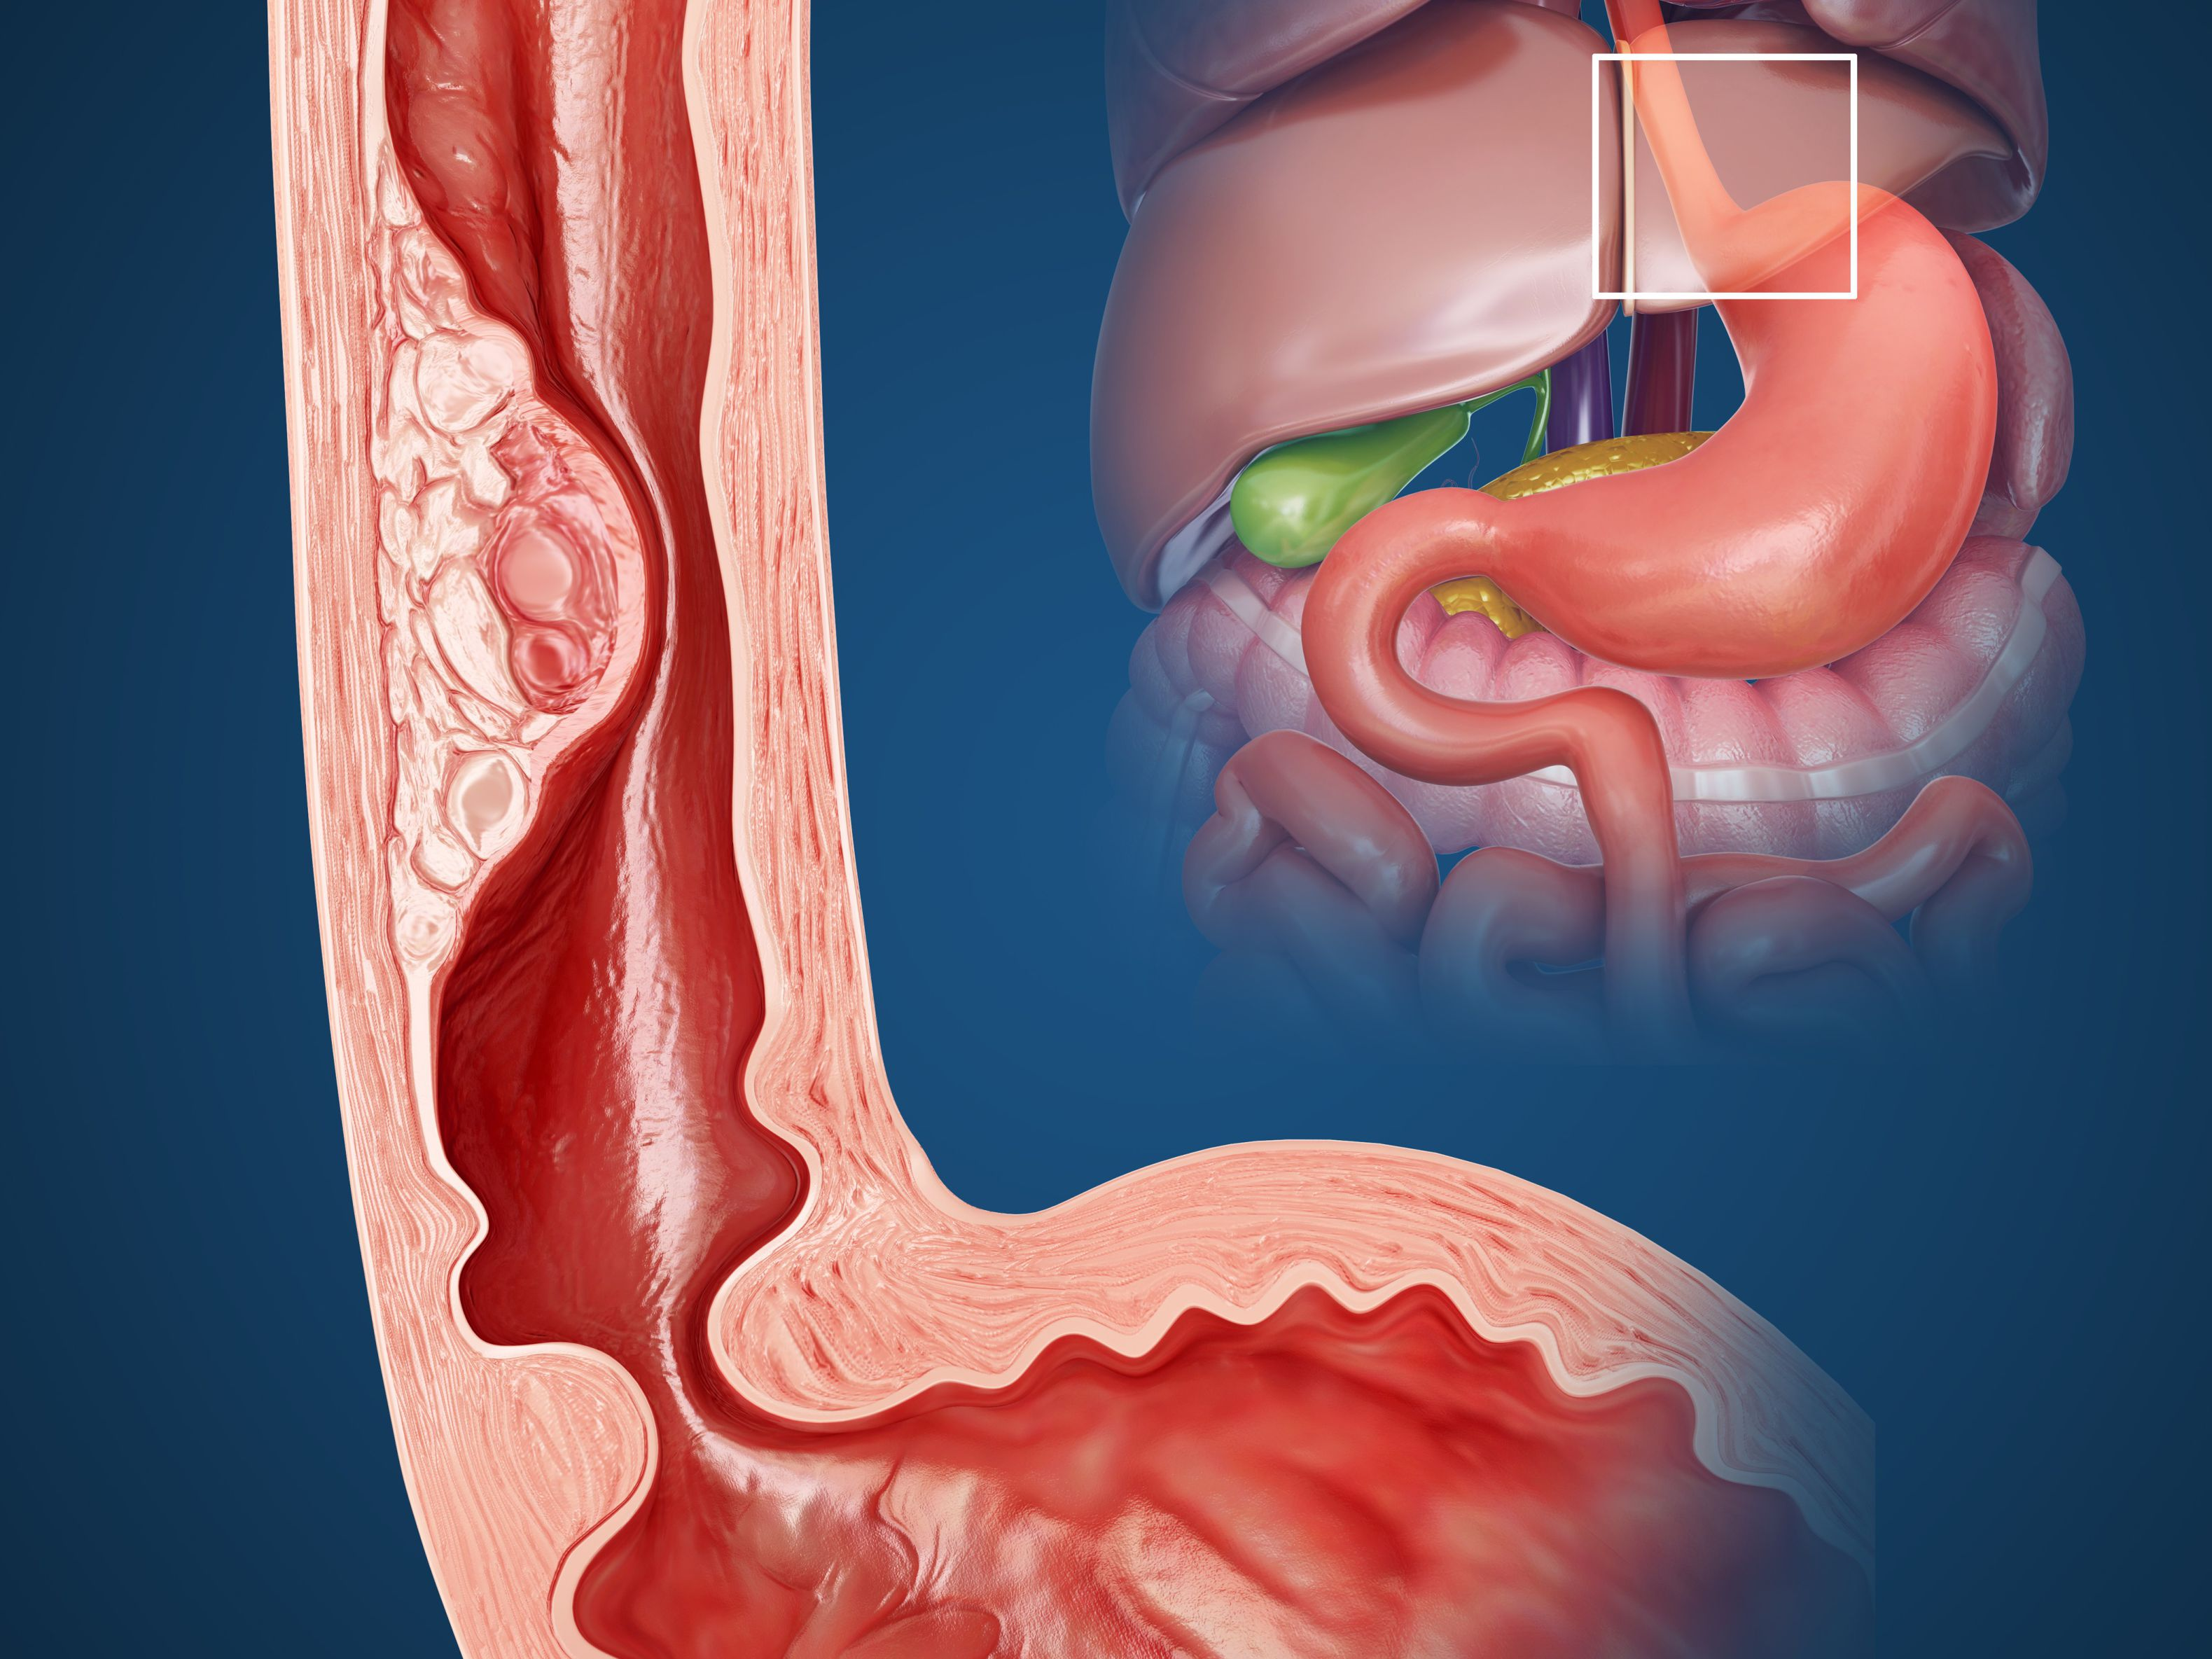 What to Expect With Esophageal Dilation